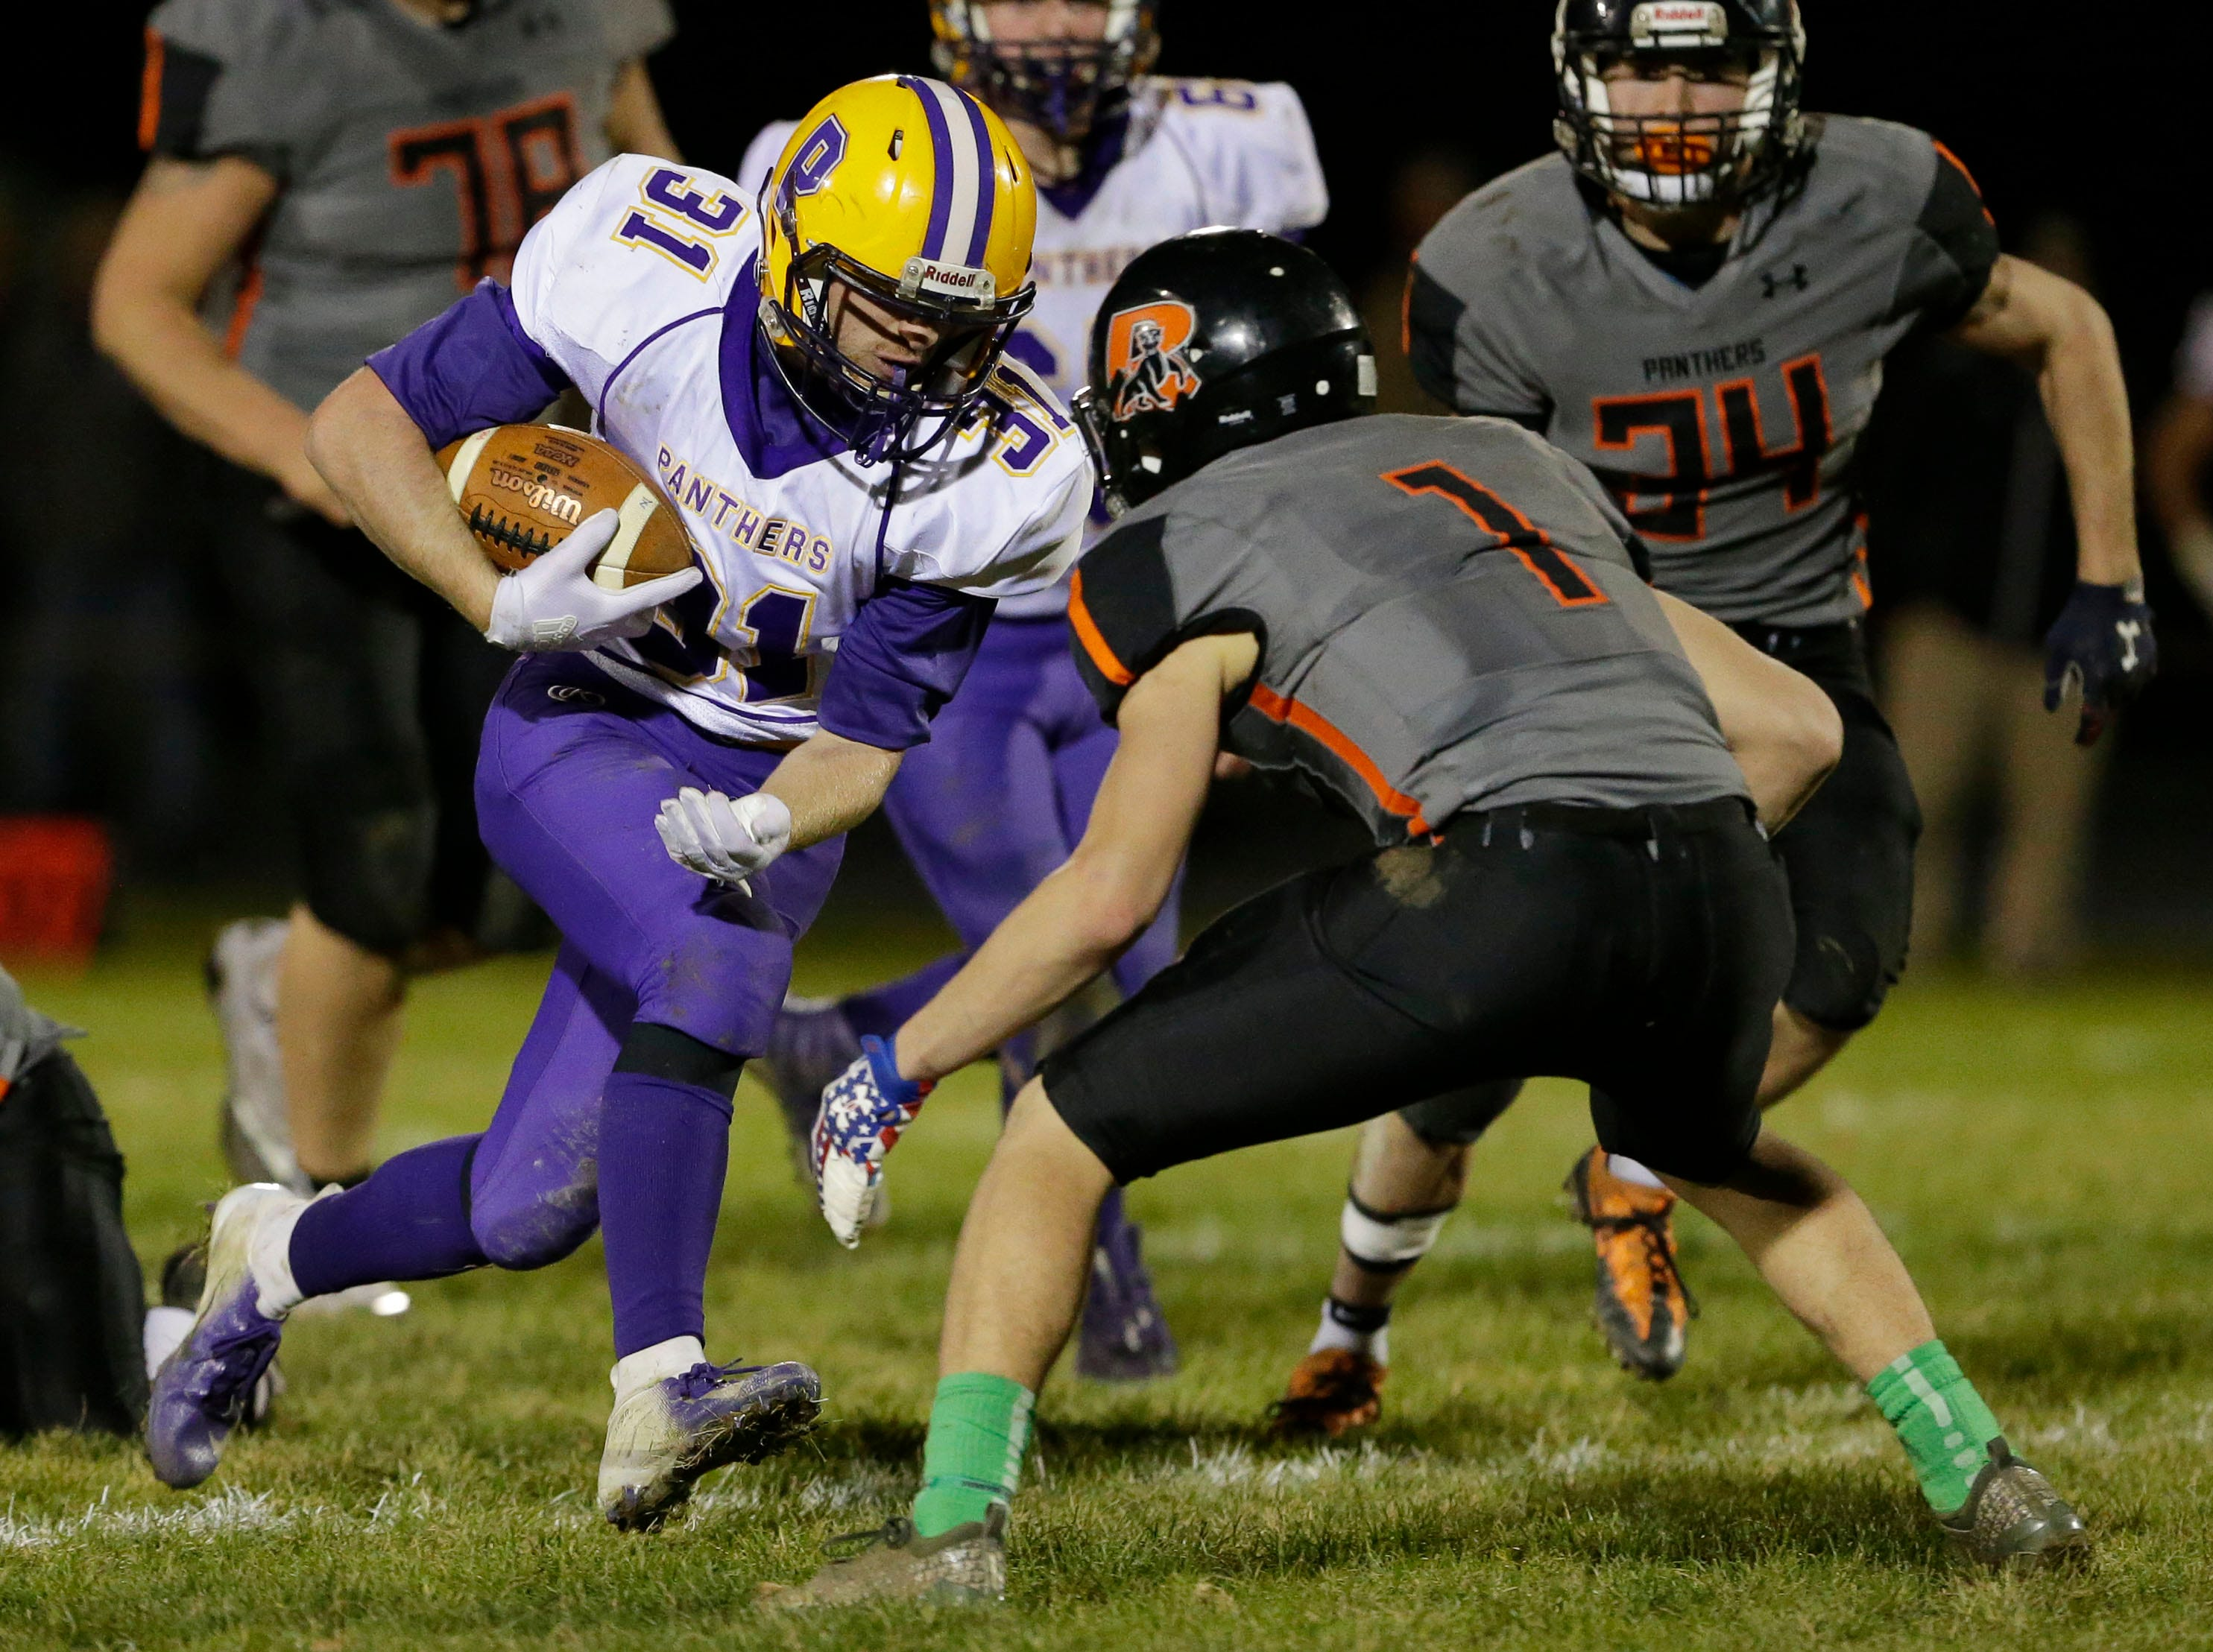 Pittsville's Trayson Ortner (31) carries the ball against Reedsville, Friday, November 2, 2018, in Reedsville, Wis.